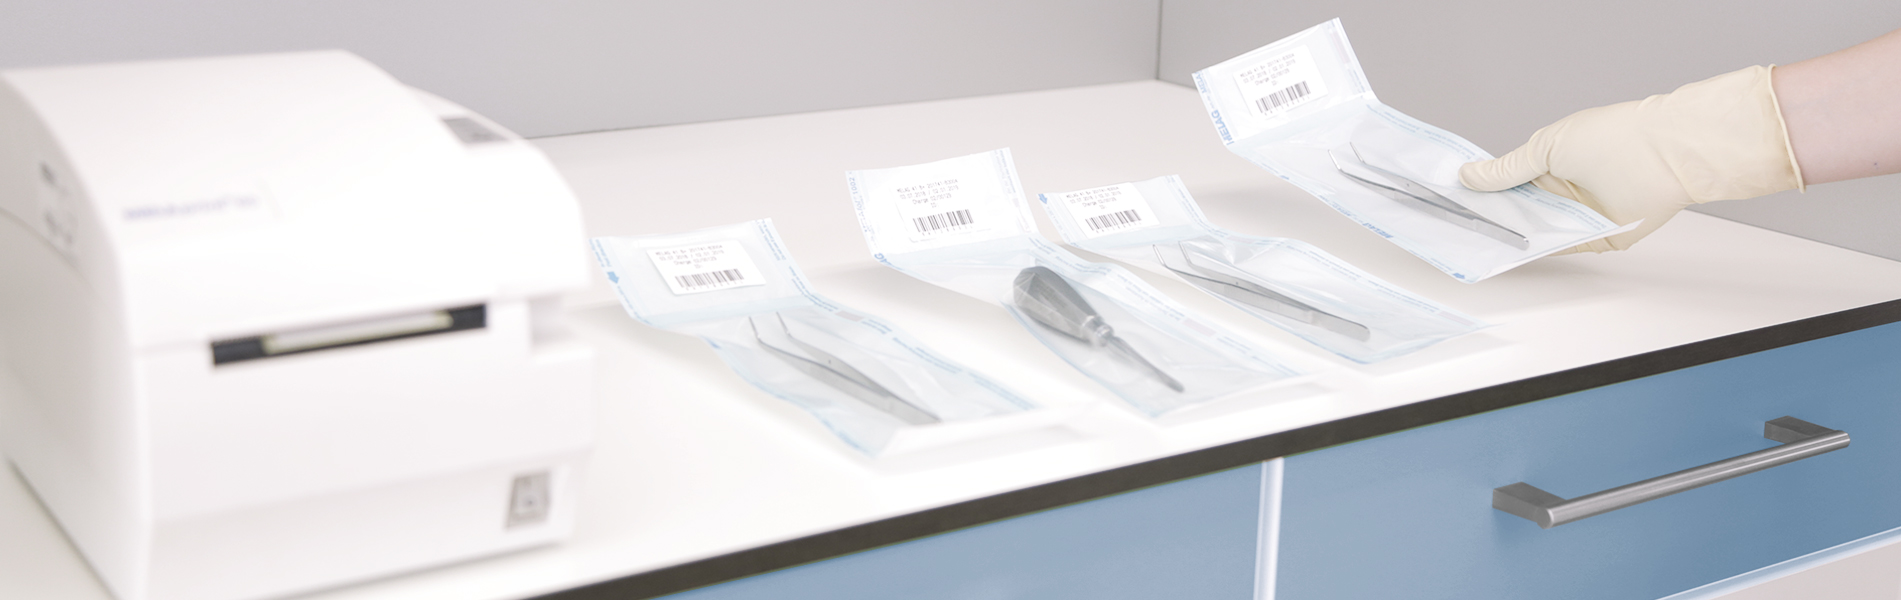 Sealed pouches with sterile instruments on work surface in the sterilization room